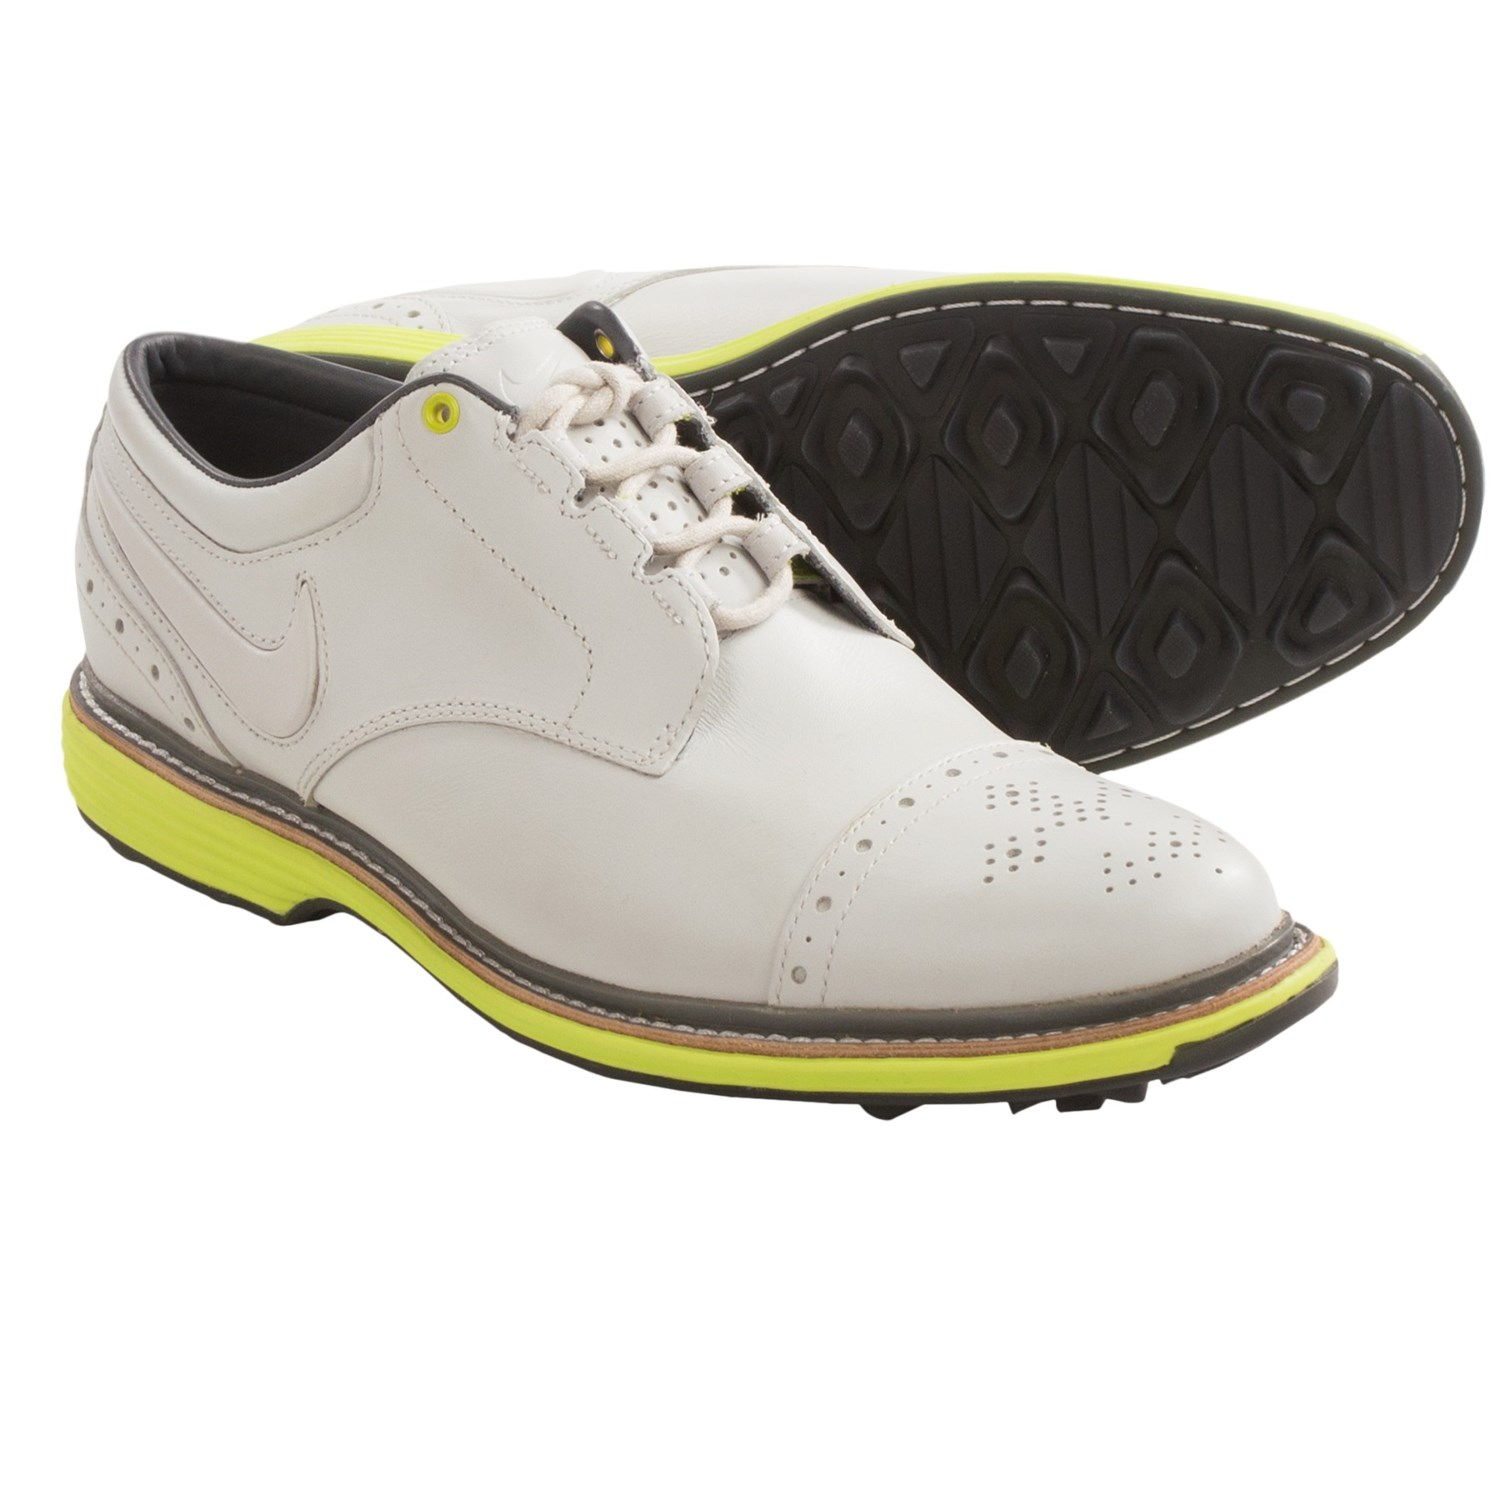 Nike Mens Golf Shoes Clearance